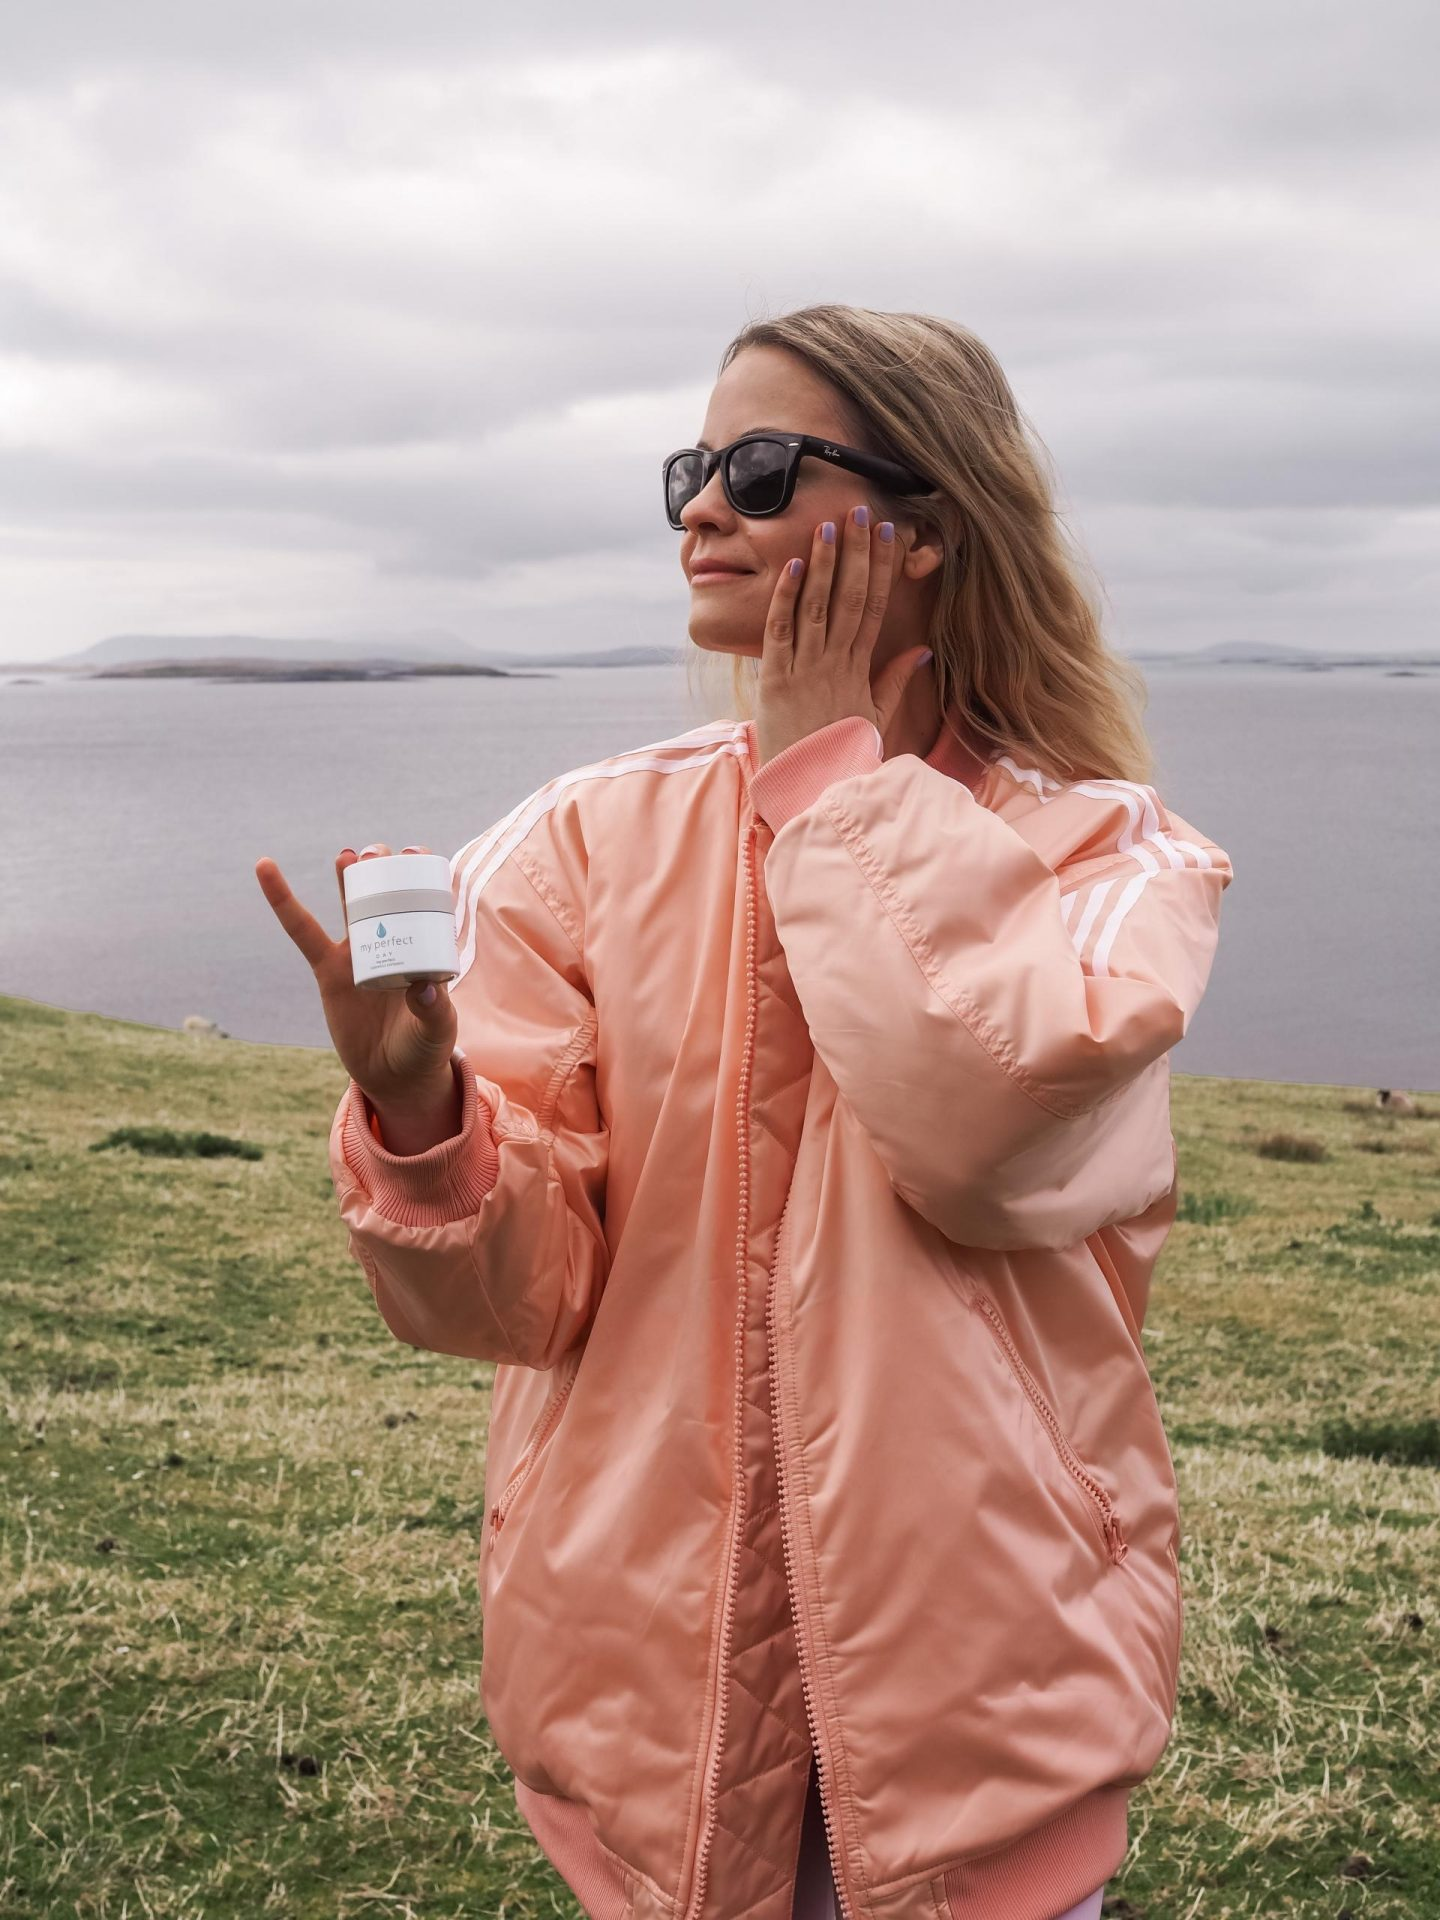 My Travel Skincare Routine: Your On-The-Go Guide